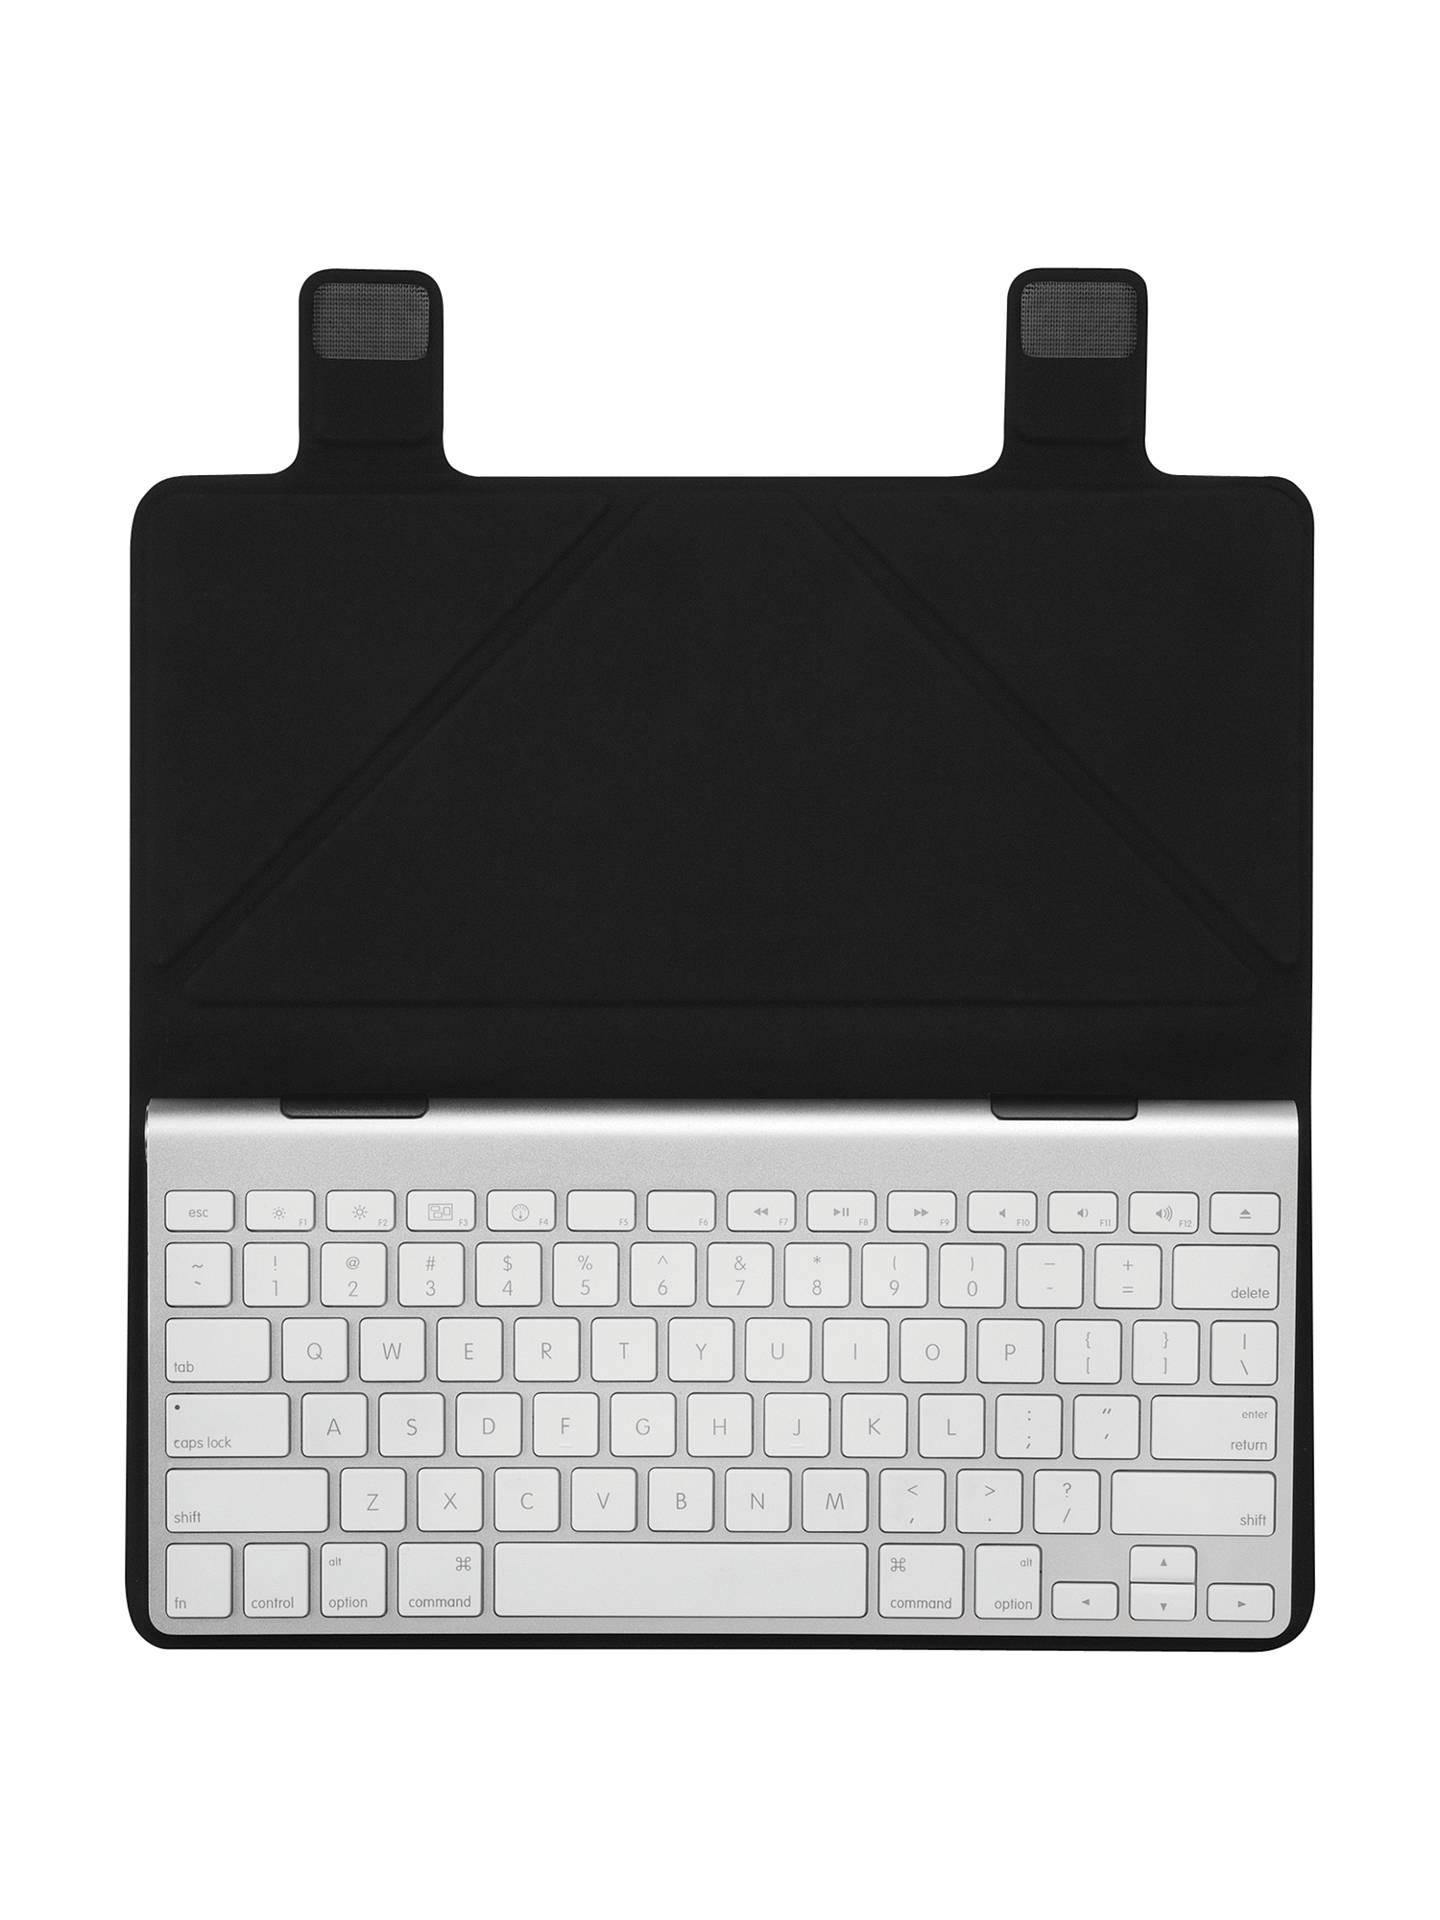 iPad 2 keyboard case review, ZAGG verse Incase Origami Workstation | 1920x1440